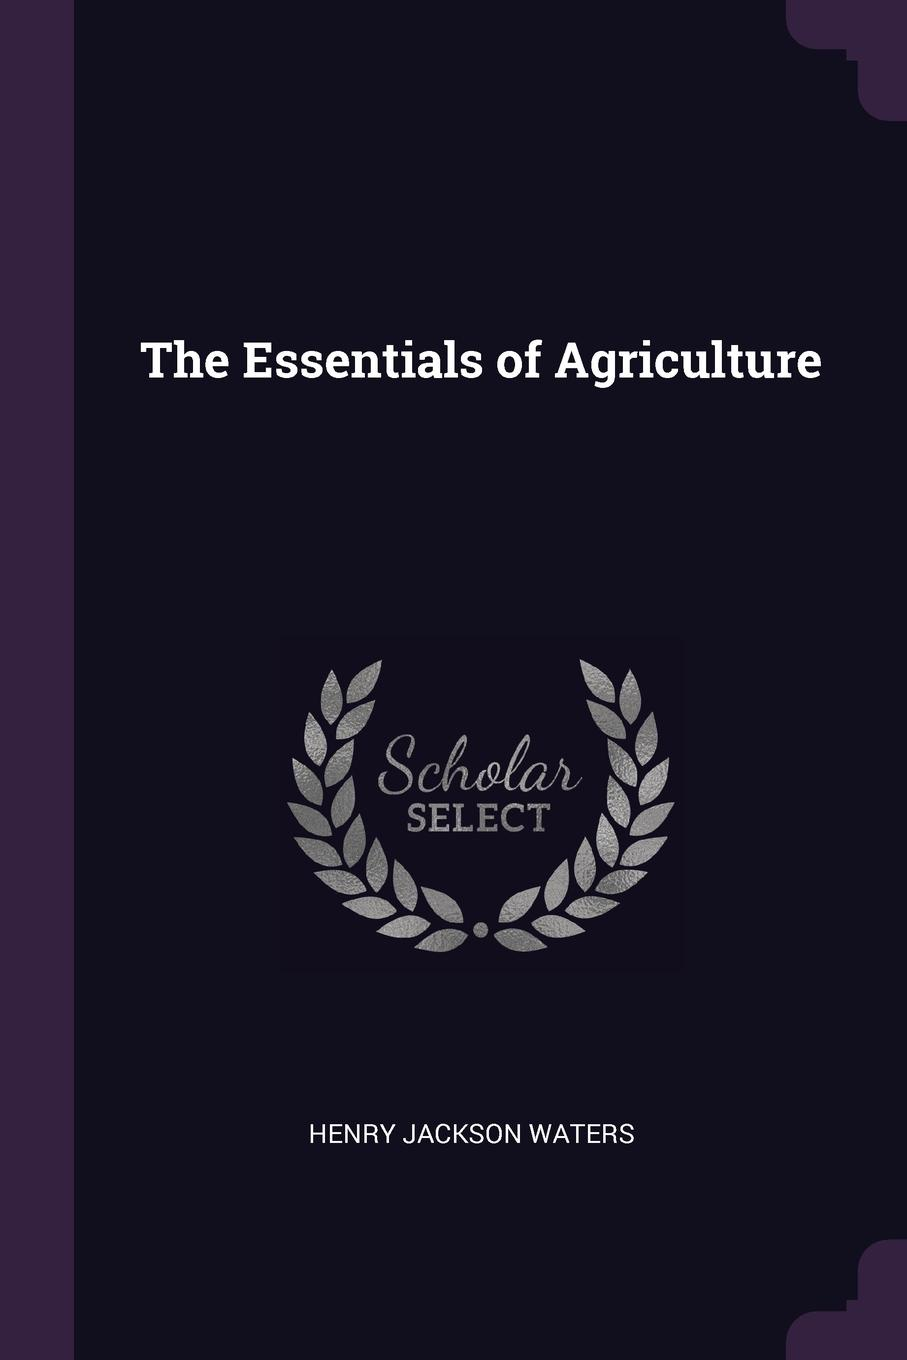 Henry Jackson Waters The Essentials of Agriculture